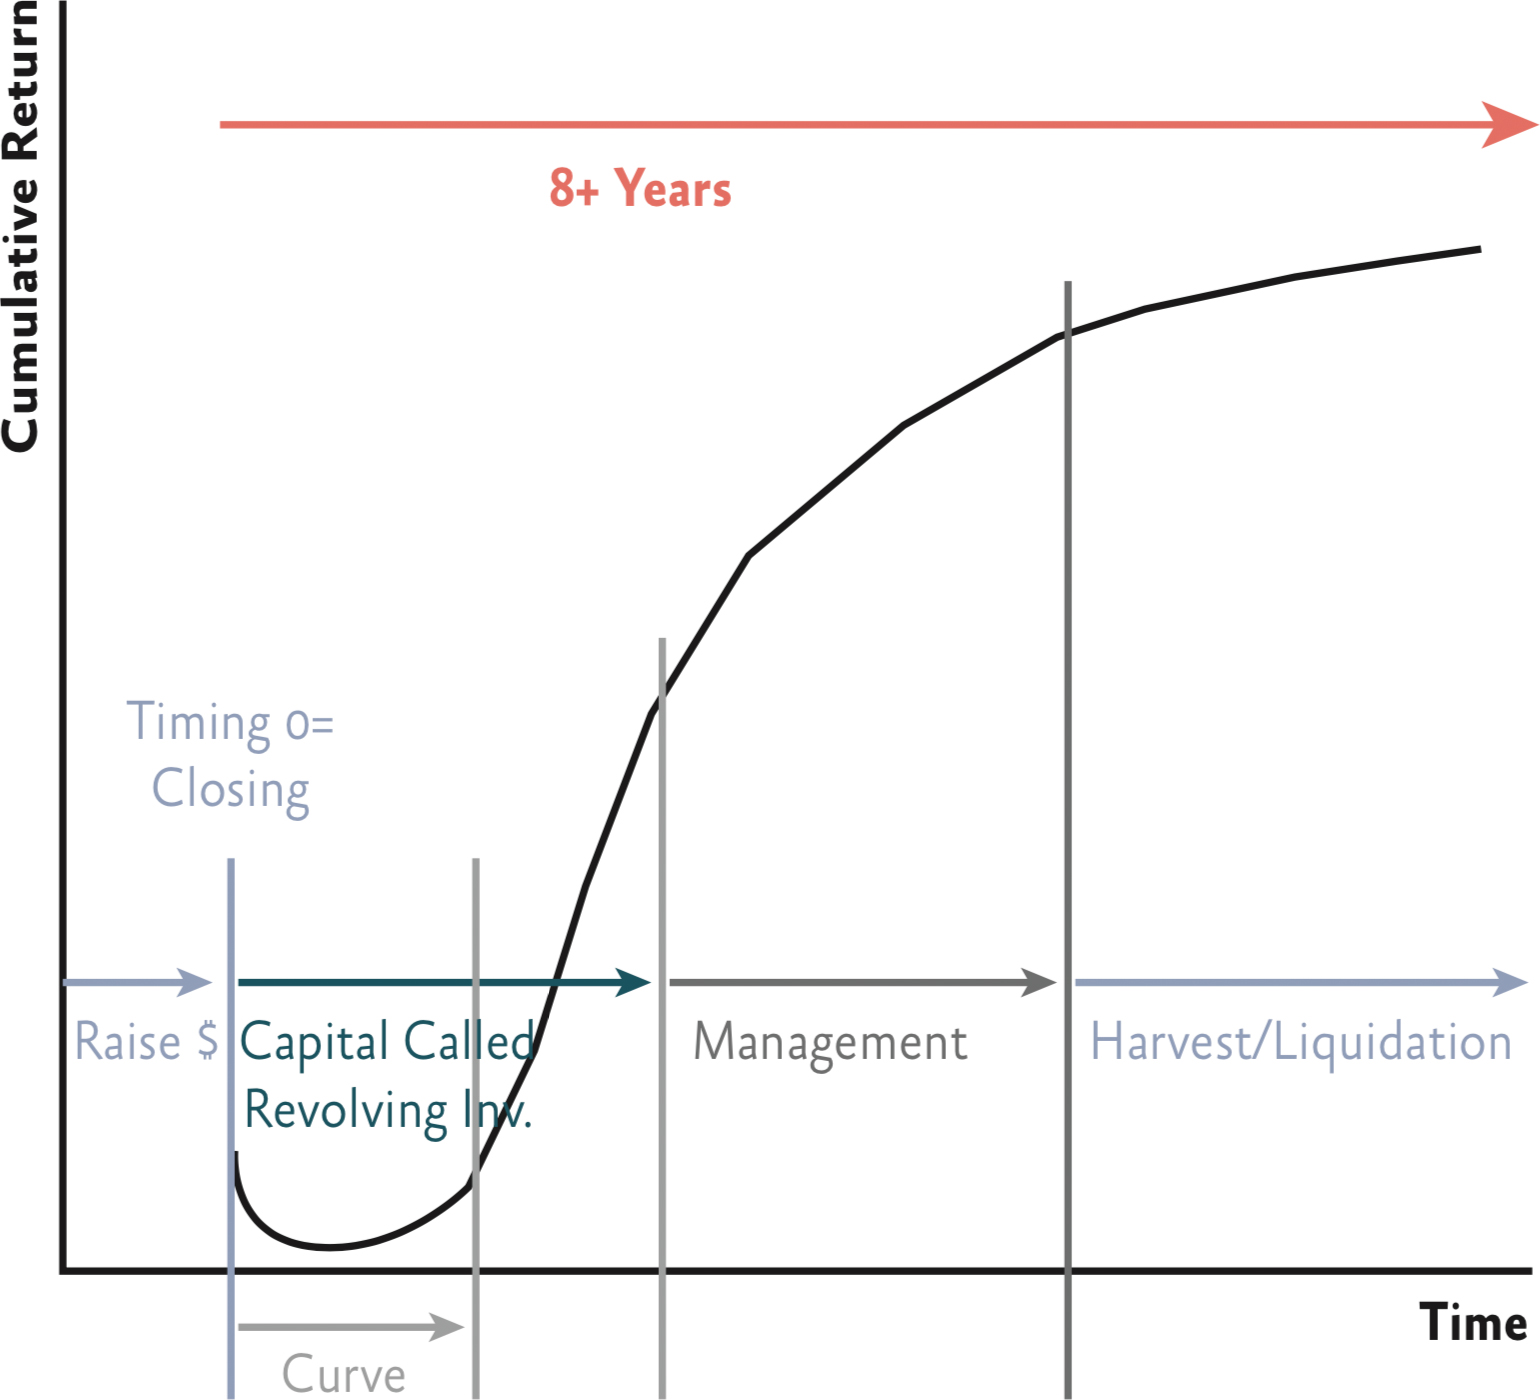 Life Cycle of a Private Equity Fund